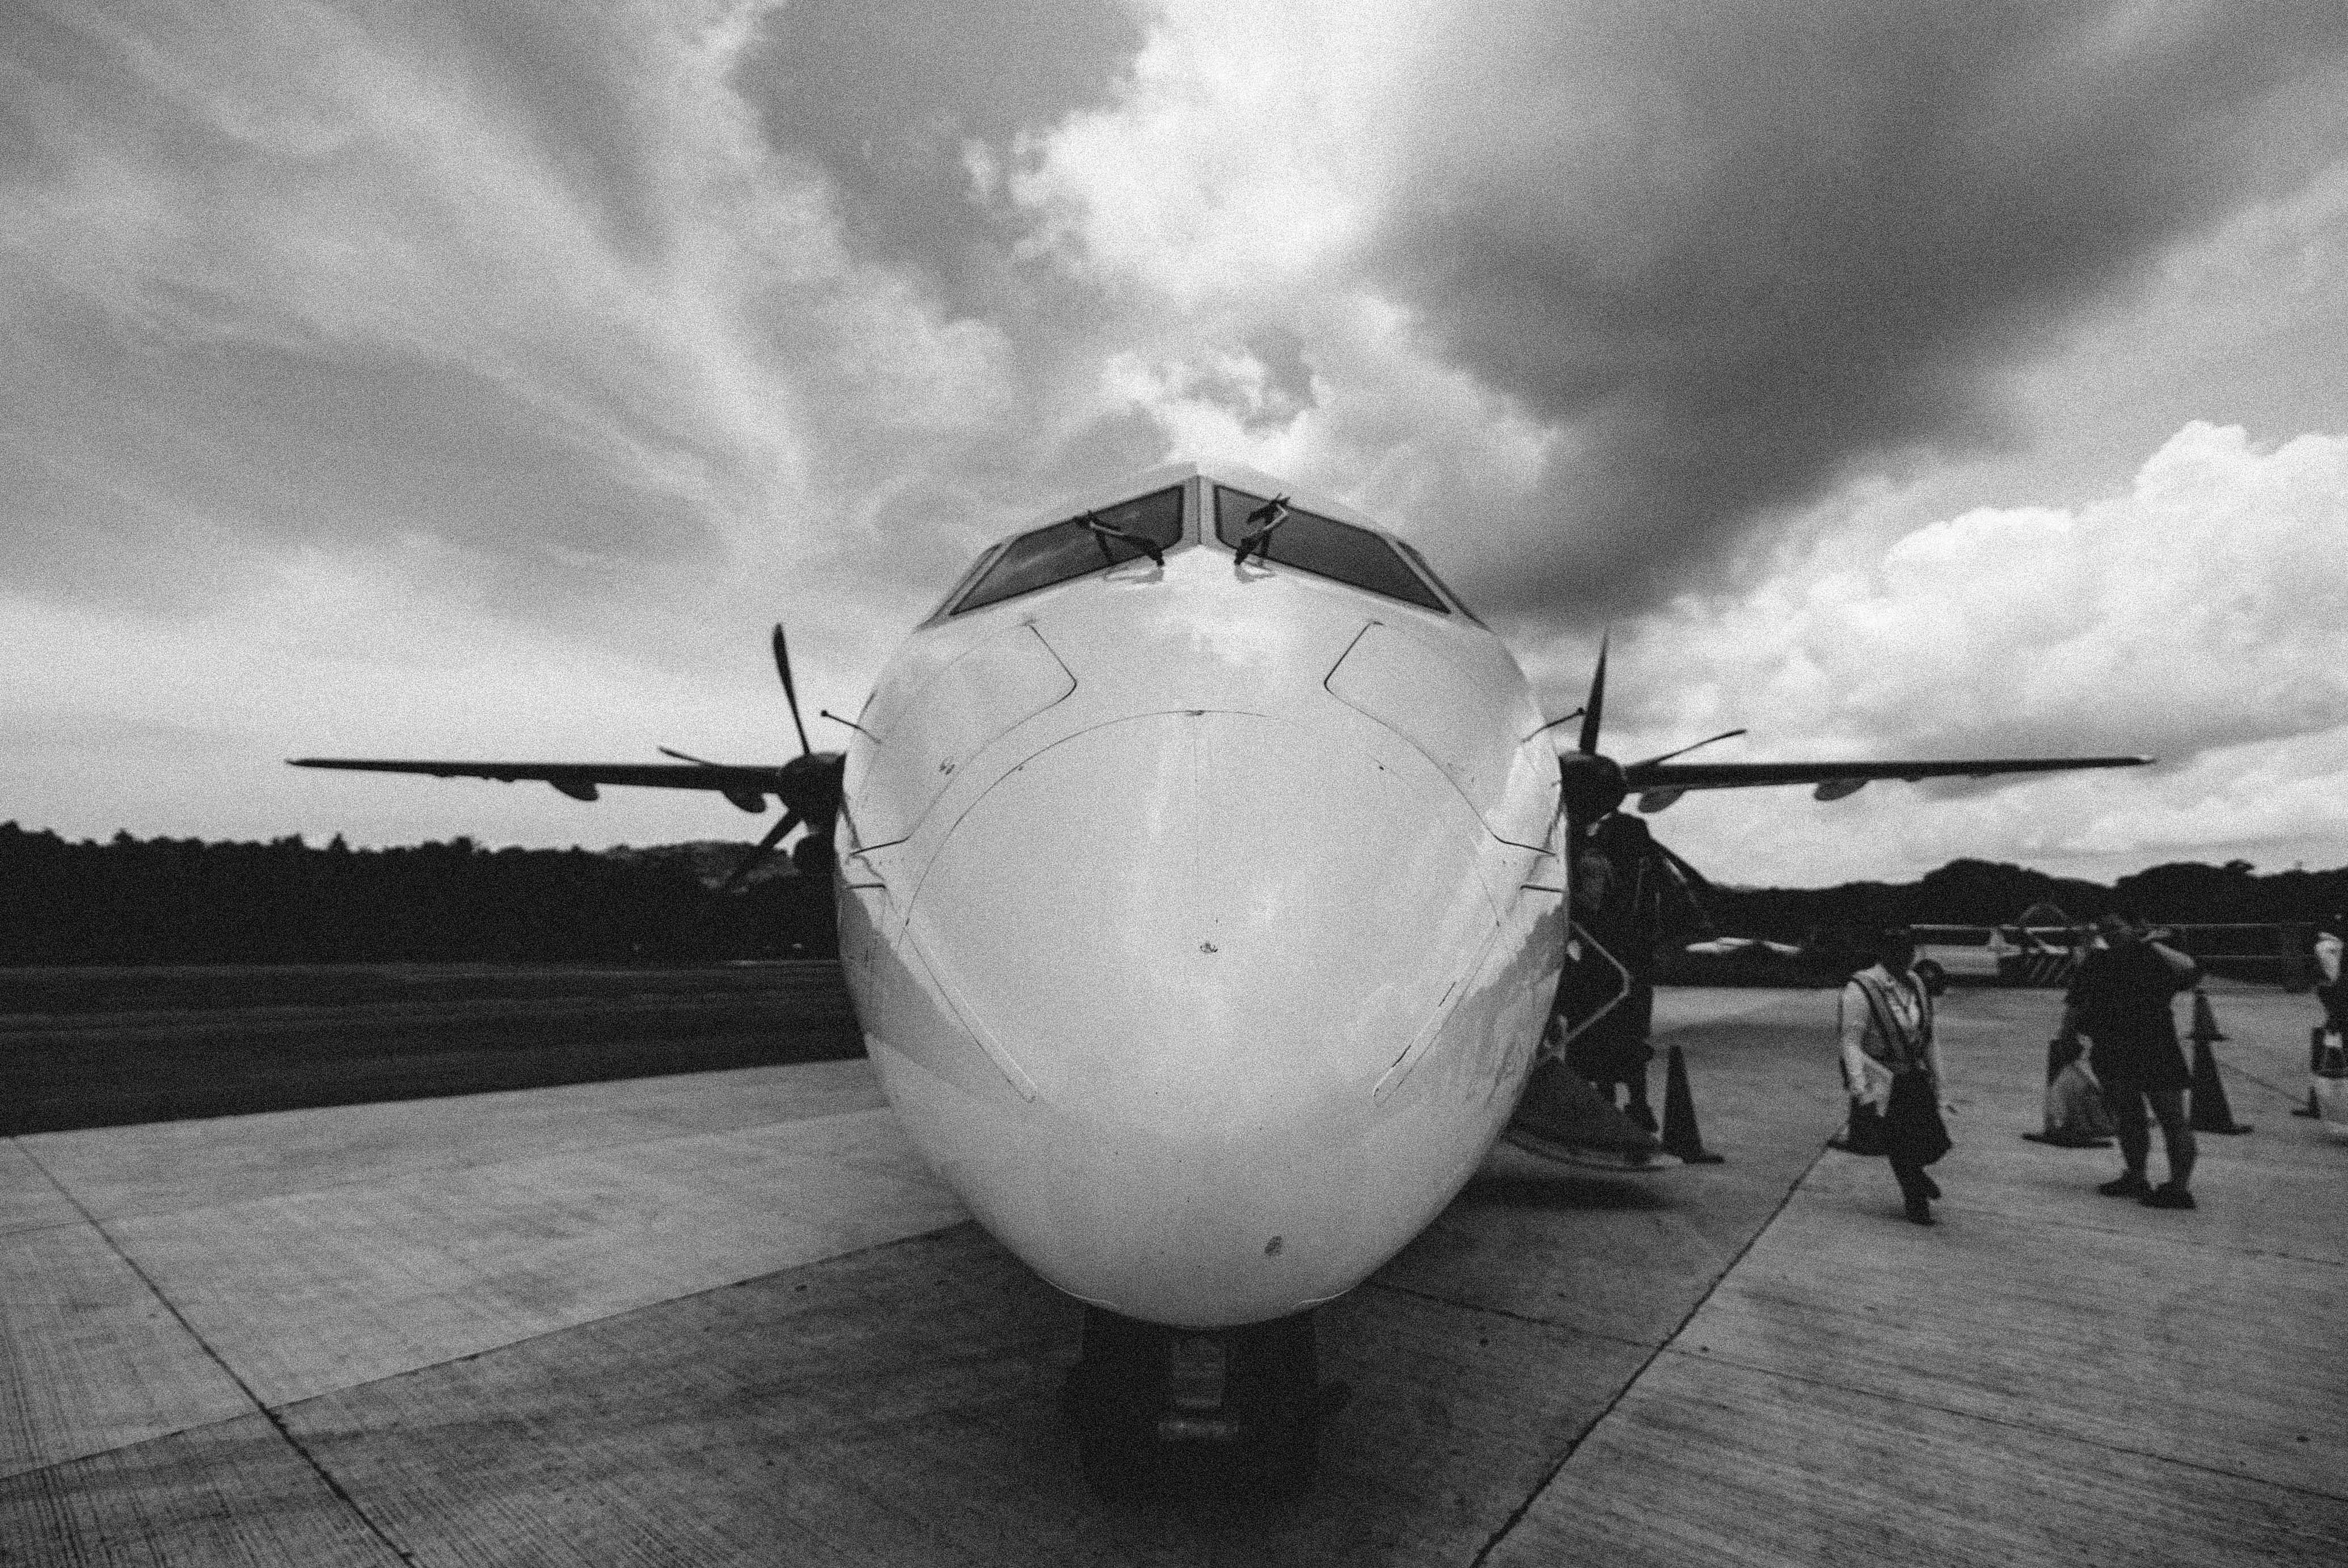 grayscale photo of plane